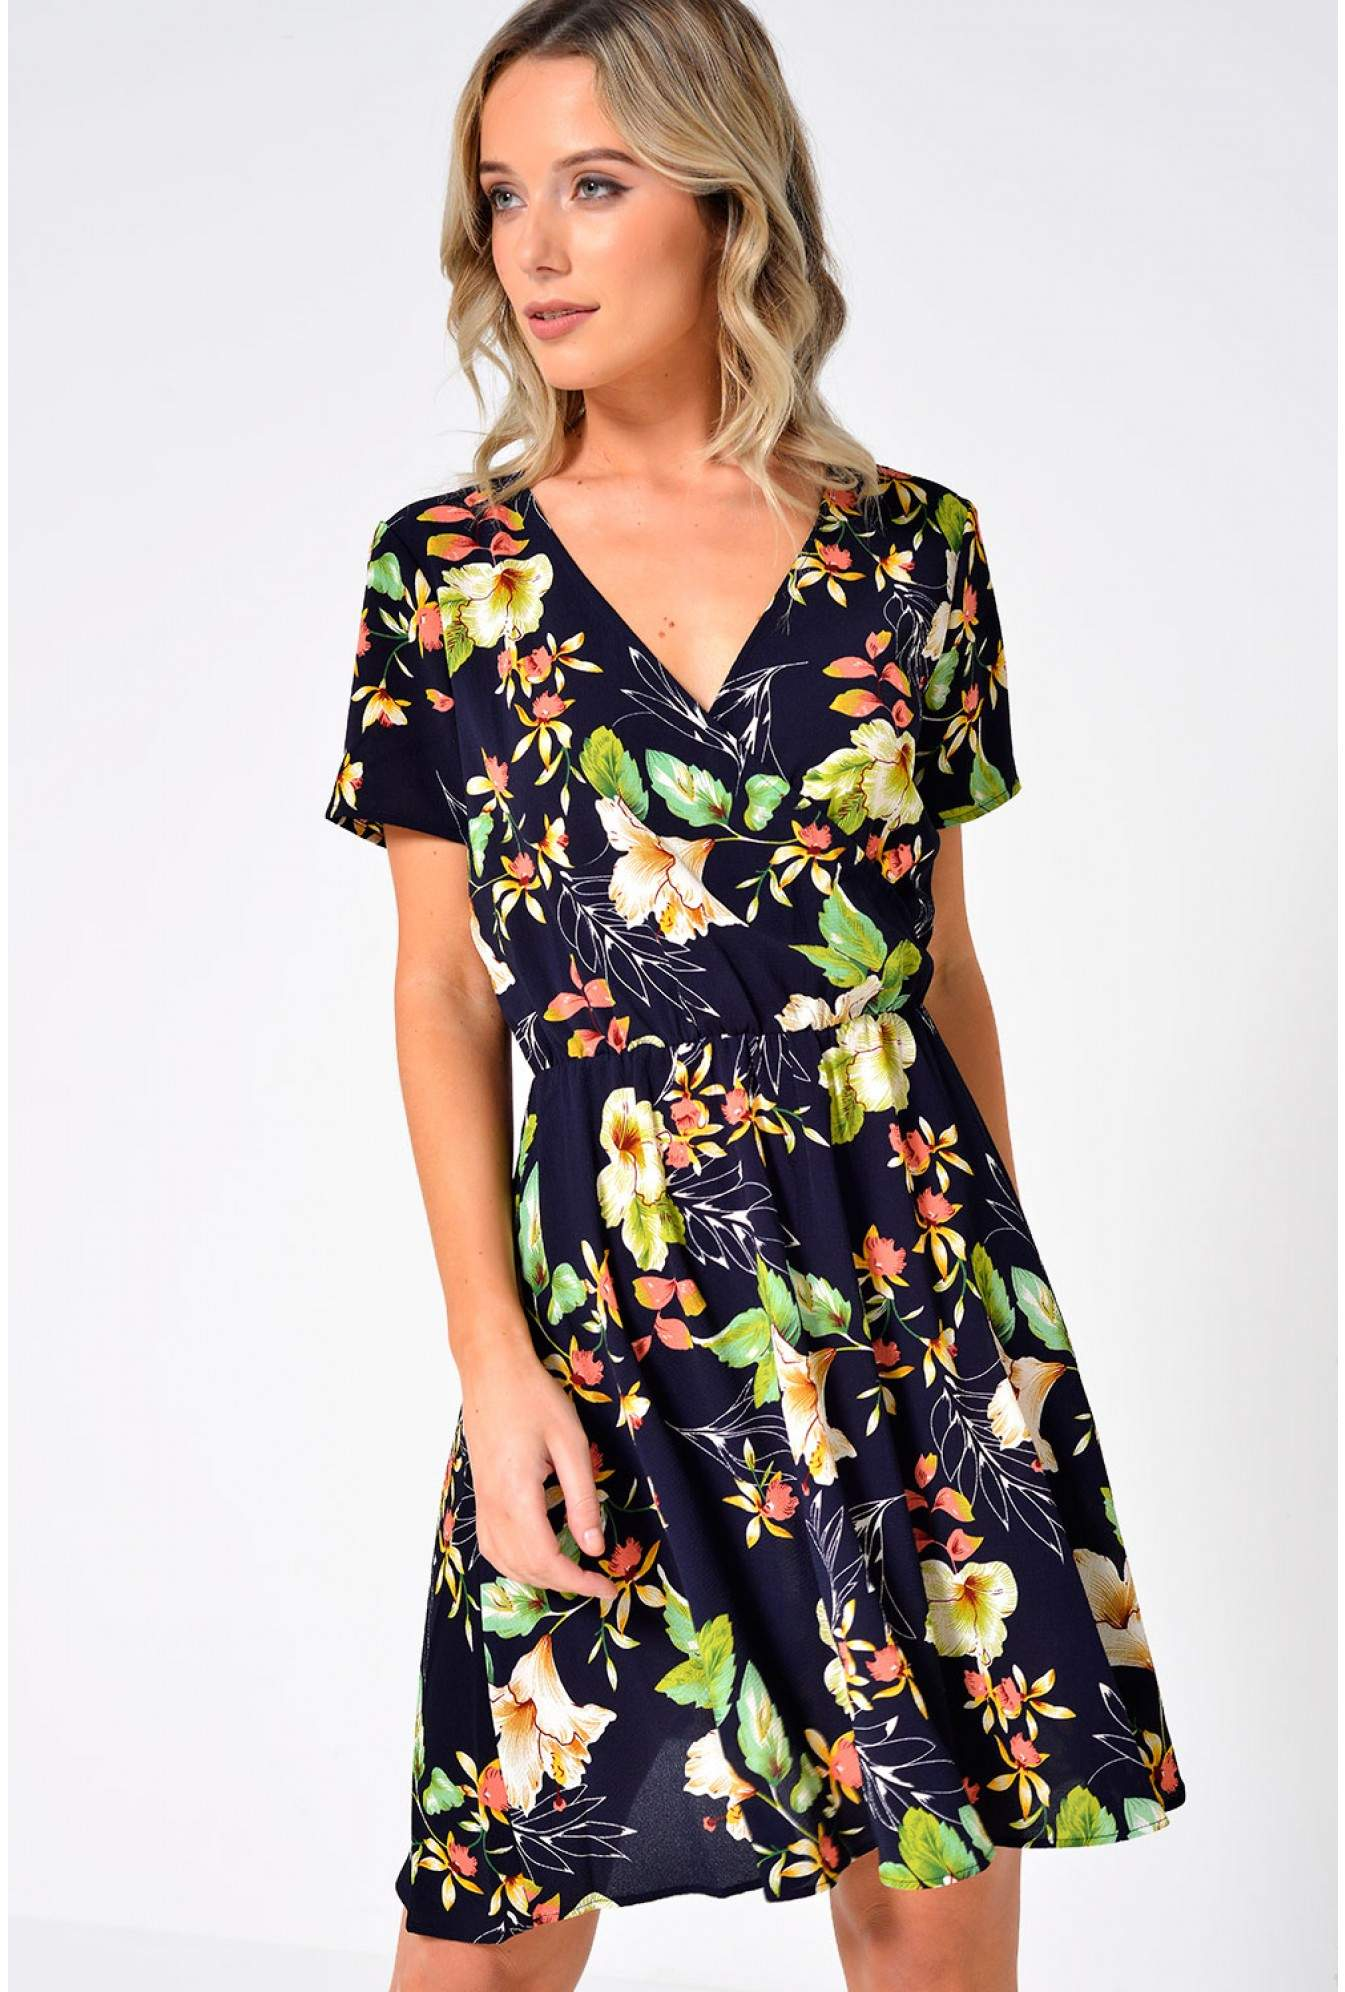 3b588c461ca7 JDY Trick Floral Wrap Dress in Navy | iCLOTHING